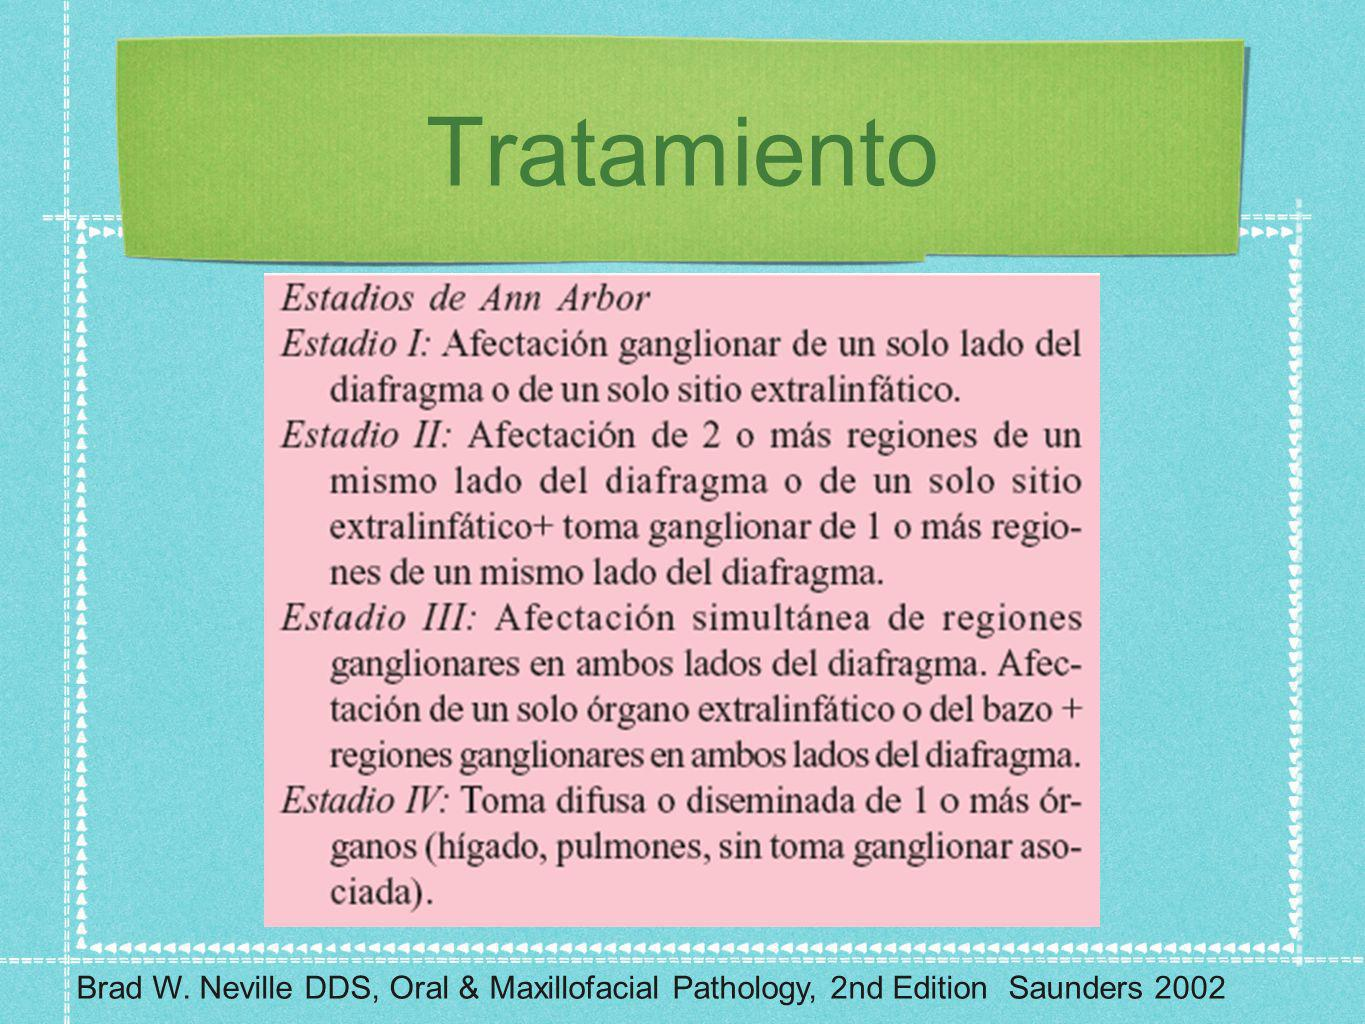 Tratamiento Brad W. Neville DDS, Oral & Maxillofacial Pathology, 2nd Edition Saunders 2002